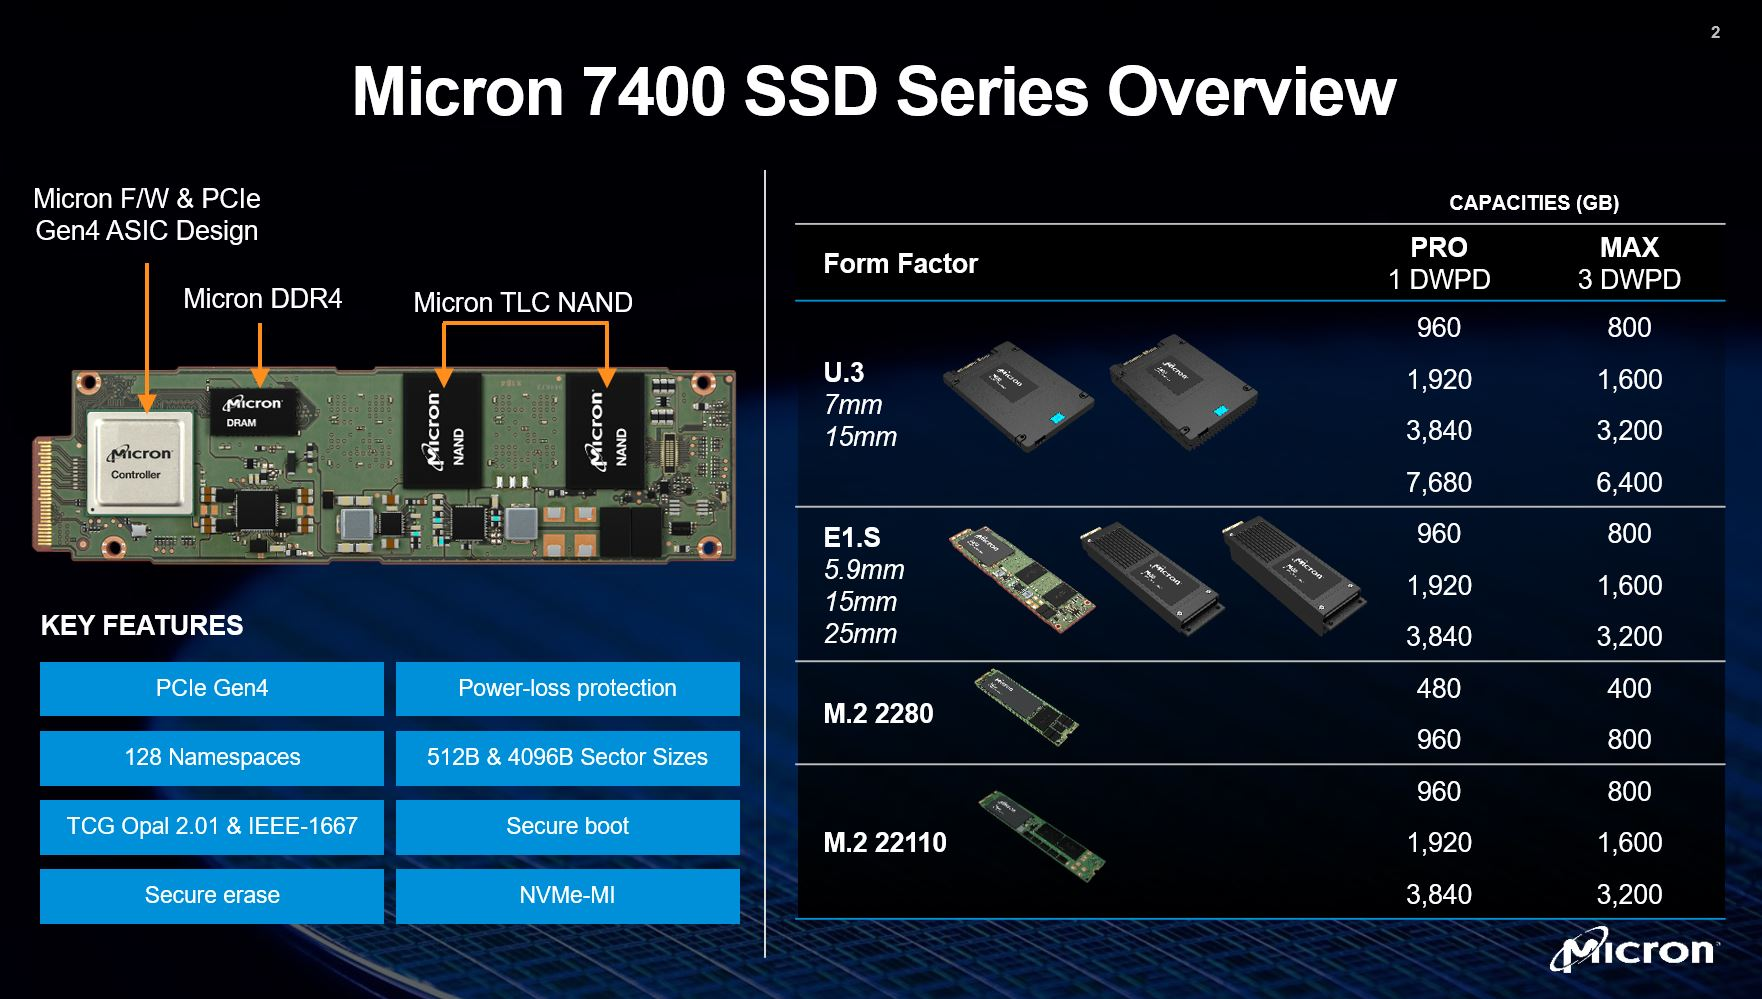 Micron 7400 Pro SSD Competitive Environment